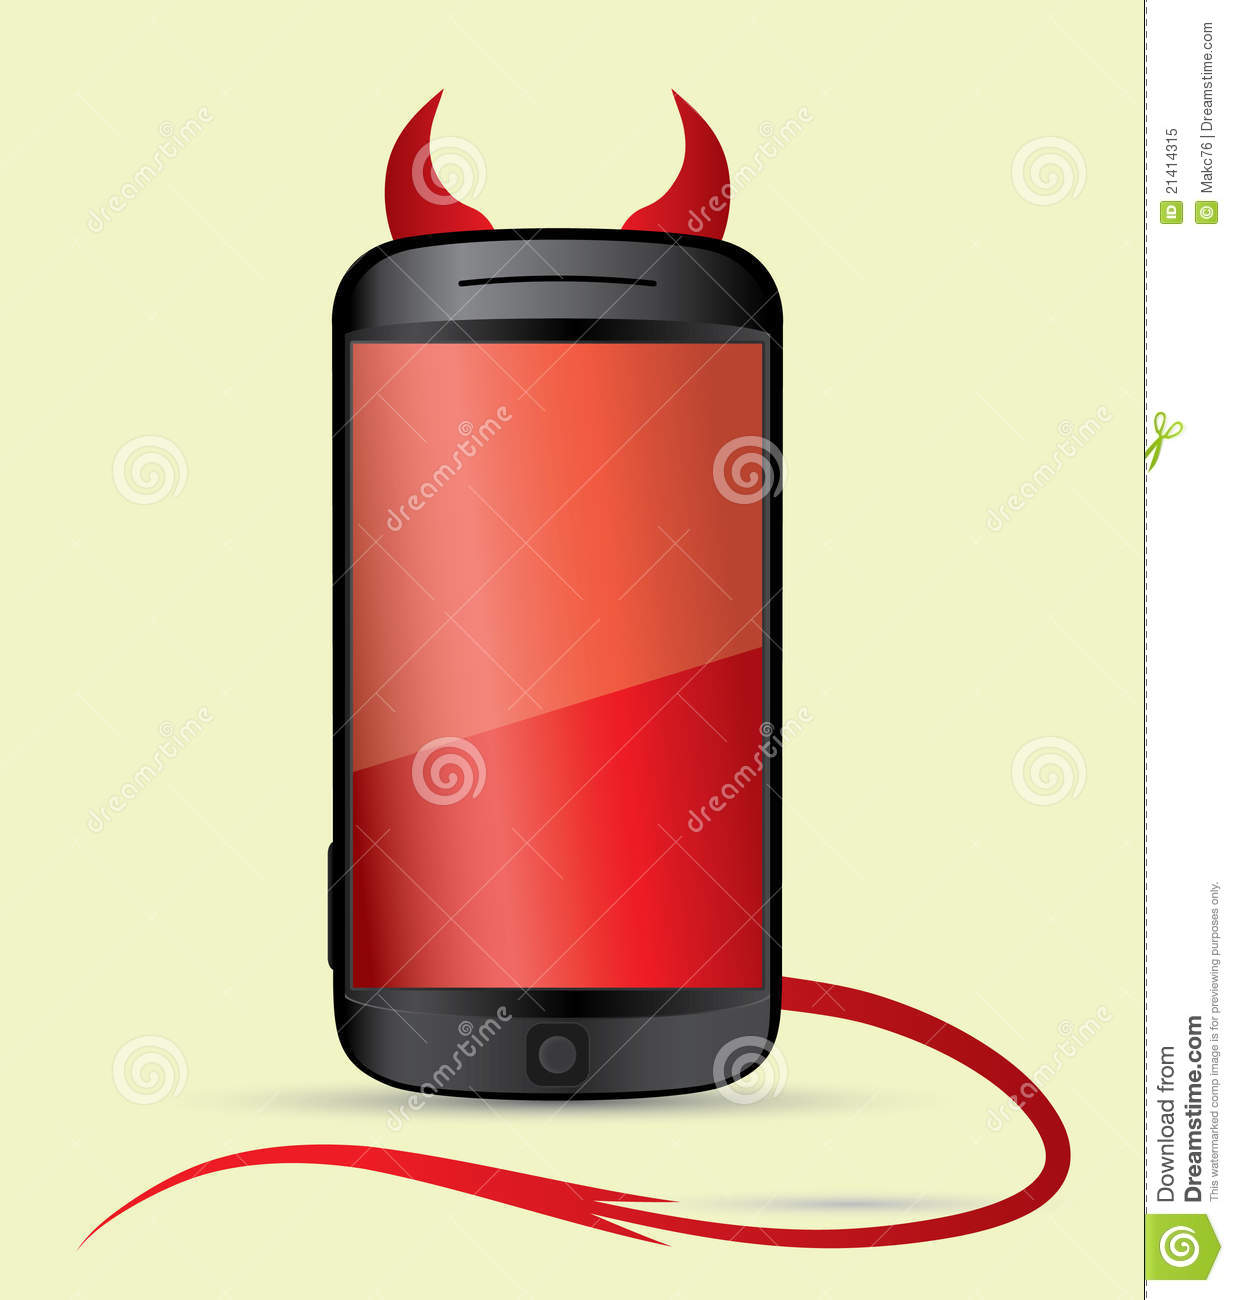 how to call devil on the phone